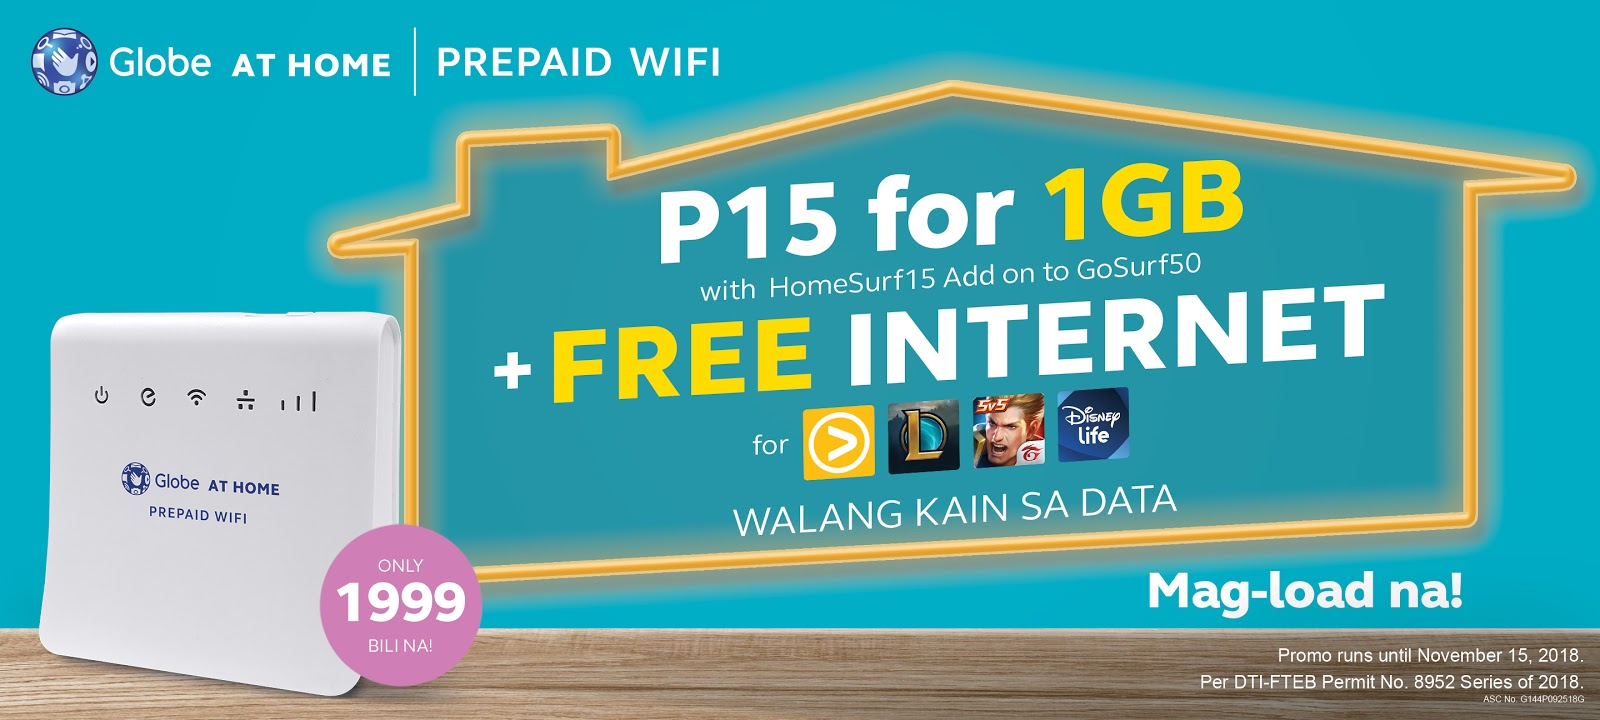 Get the lowdown on LOL with FREE INTERNET from Globe at Home Prepaid